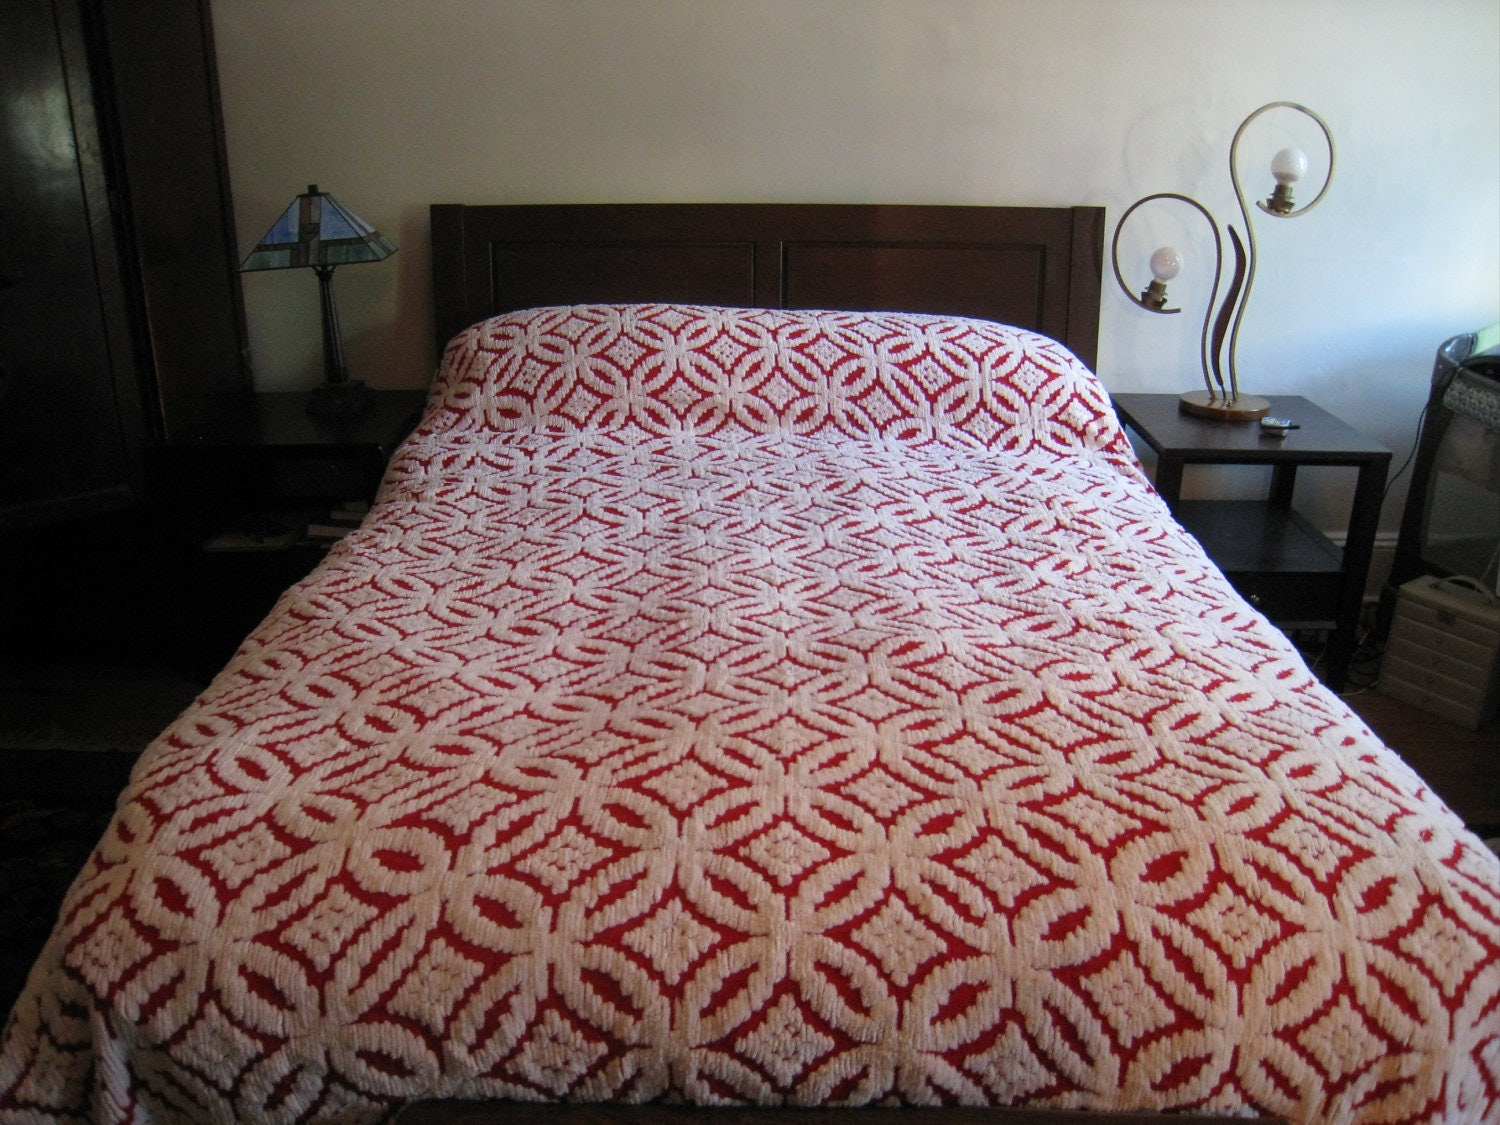 Vintage Chenille Bedspread Red And White Chenille Blanket